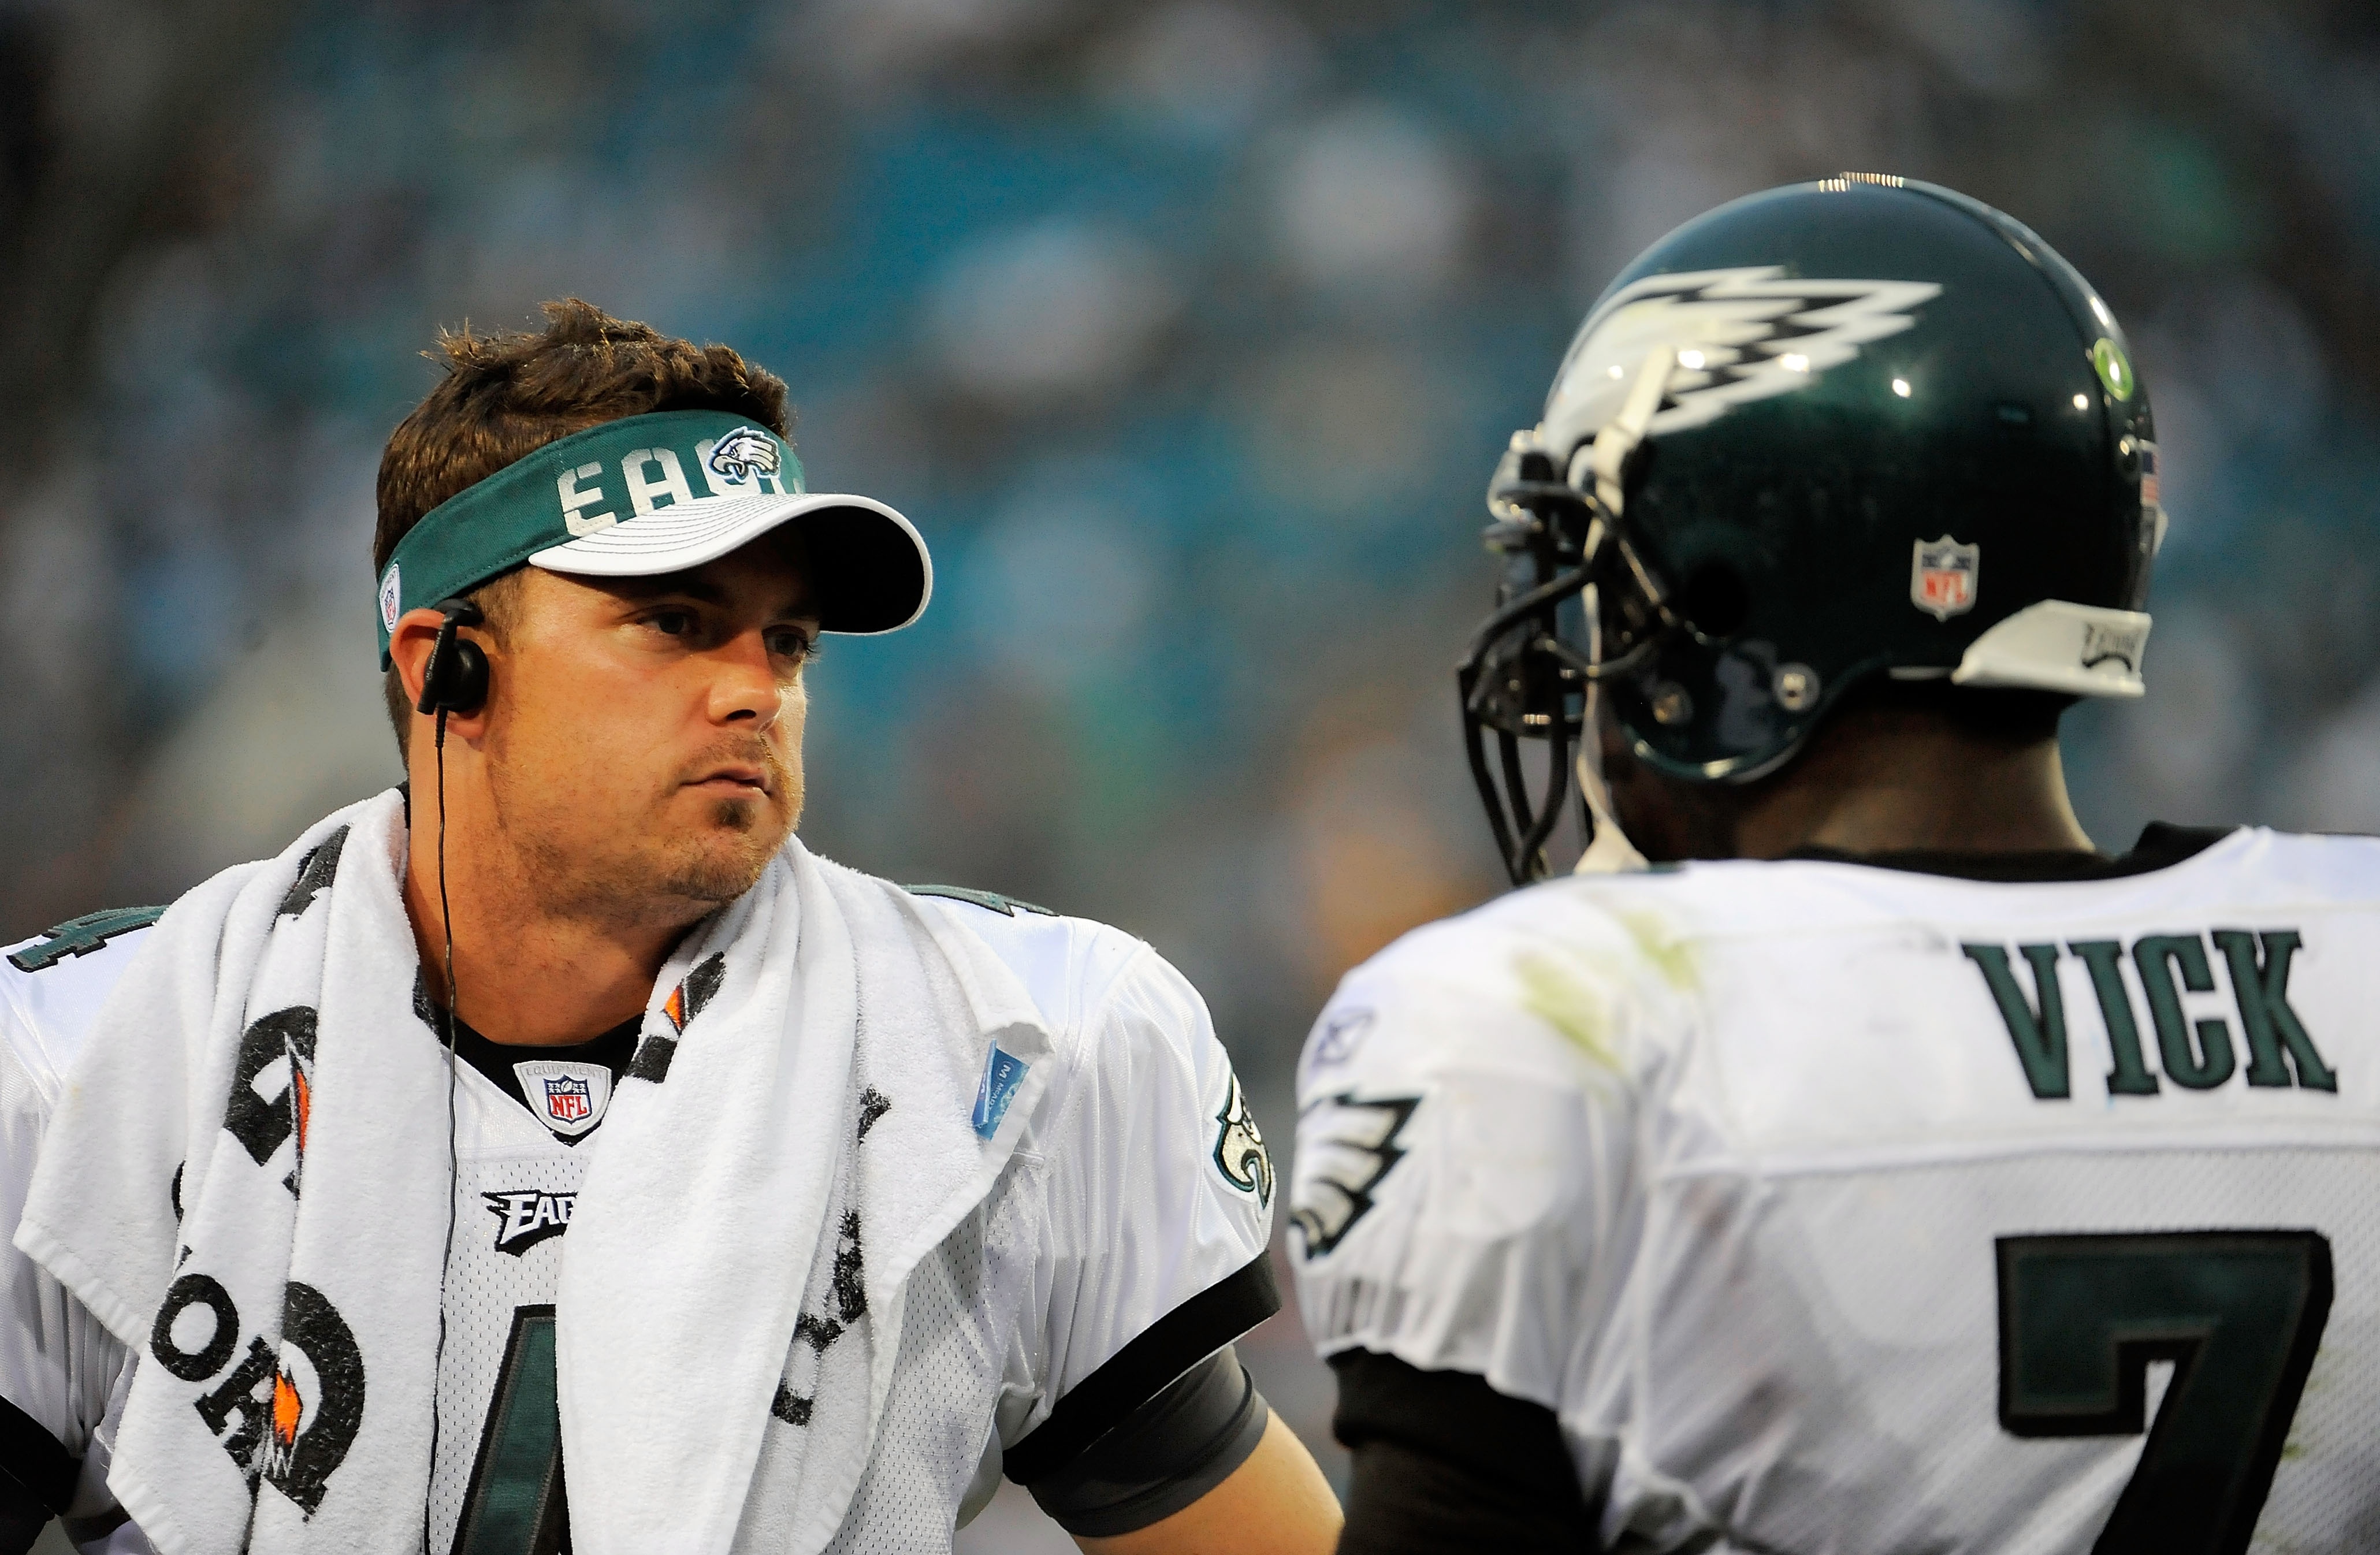 JACKSONVILLE, FL - SEPTEMBER 26:  Quarterbacks Kevin Kolb #4 and Michael Vick #7 of the Philadelphia Eagles talk on the sidelines during a time-out against the Jacksonville Jaguars at EverBank Field on September 26, 2010 in Jacksonville, Florida. The Eagl